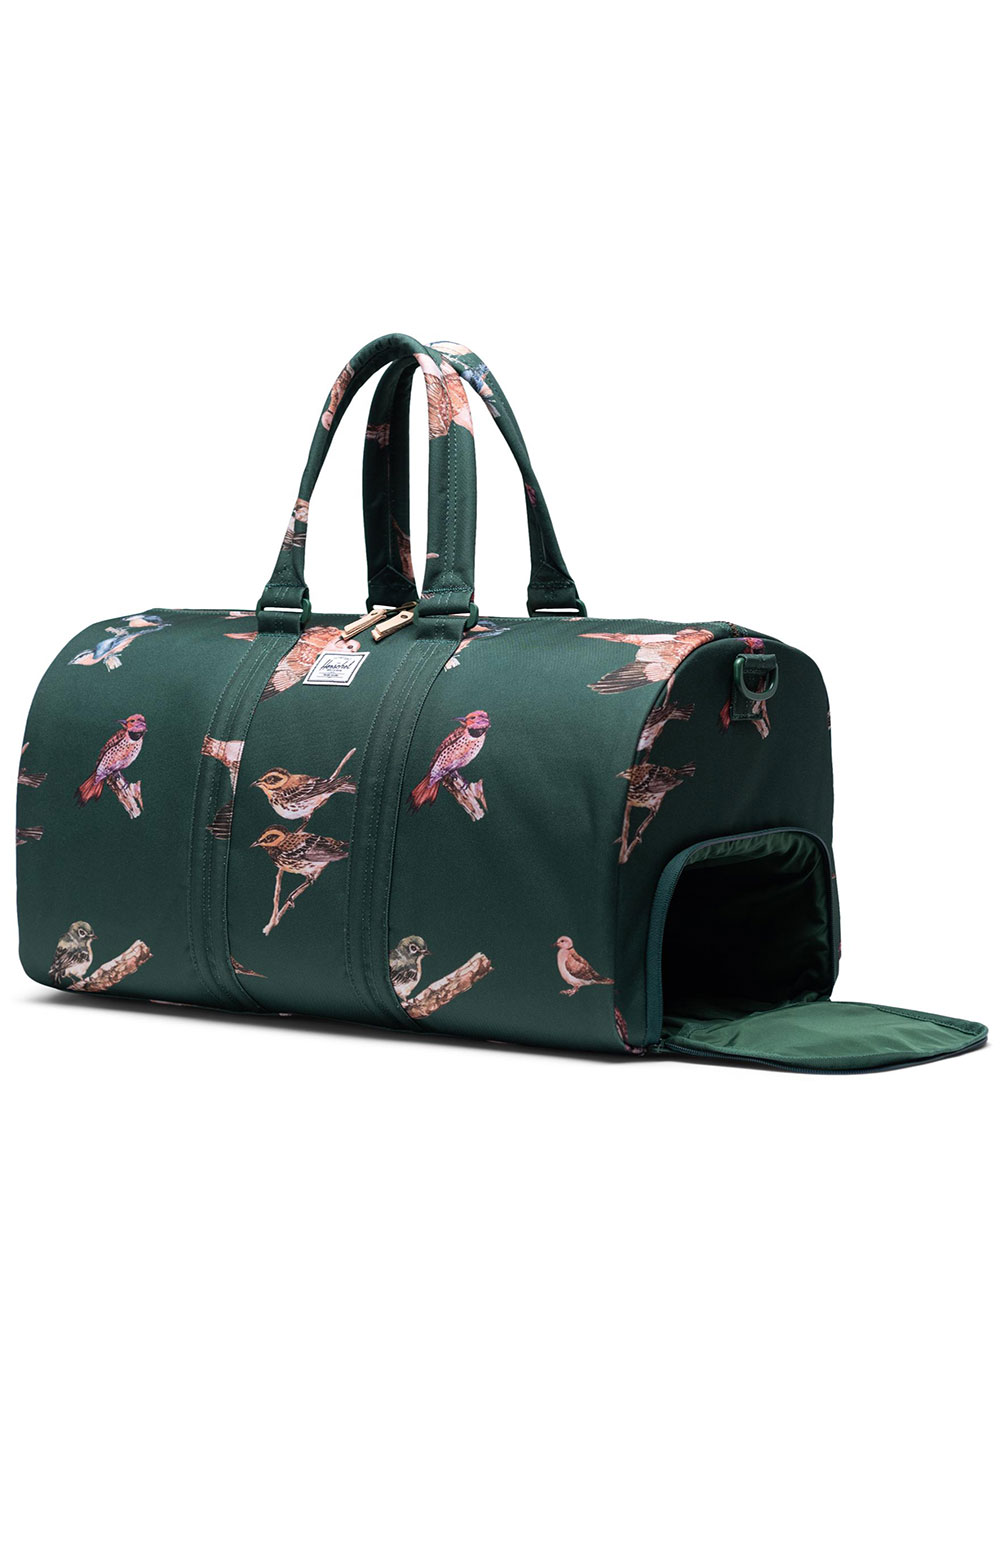 Novel Duffle Bag - Dark Green Birds 3